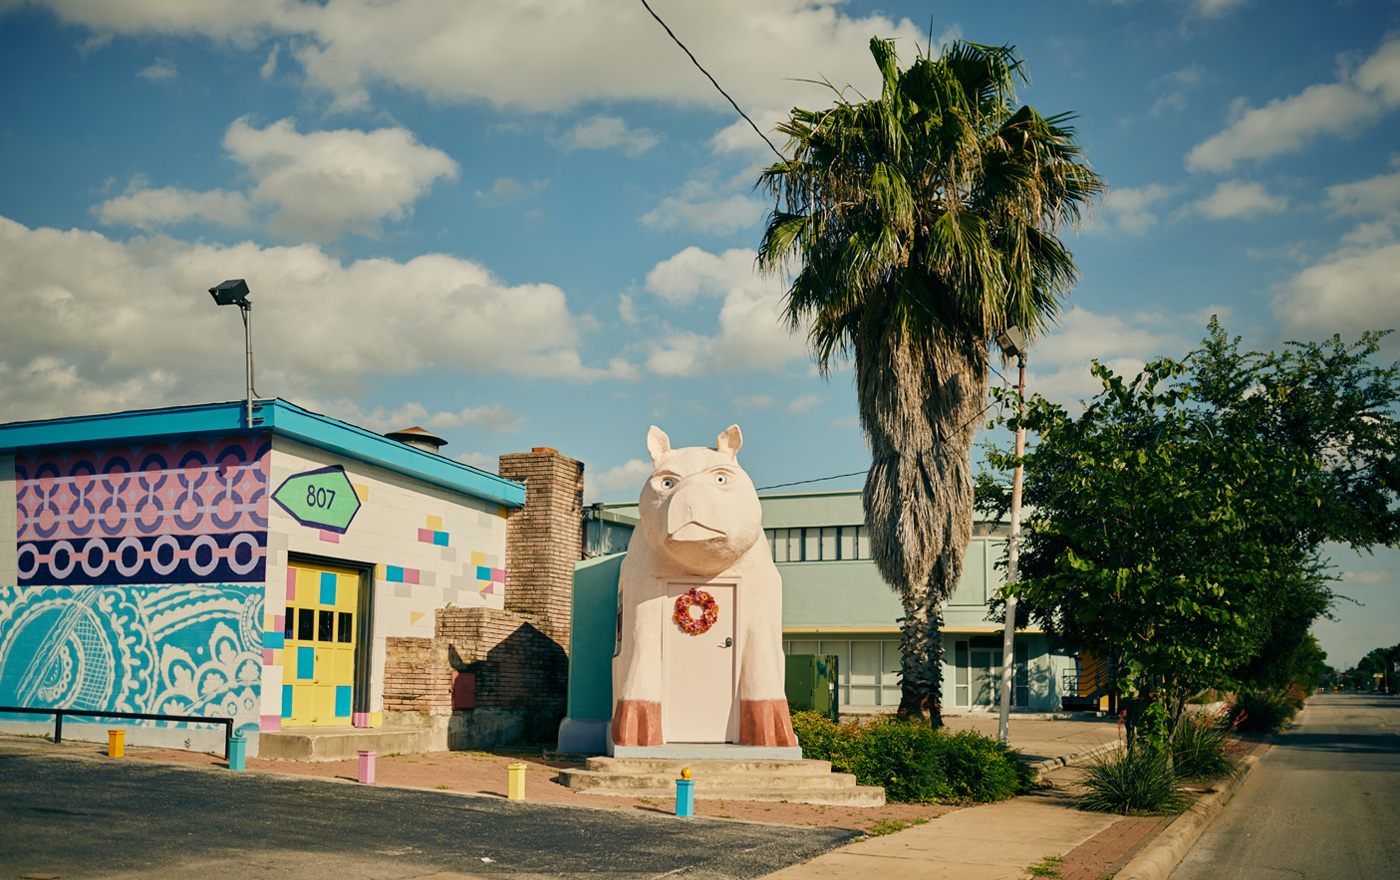 Picture of a colorful building and pig statue located in Southtown